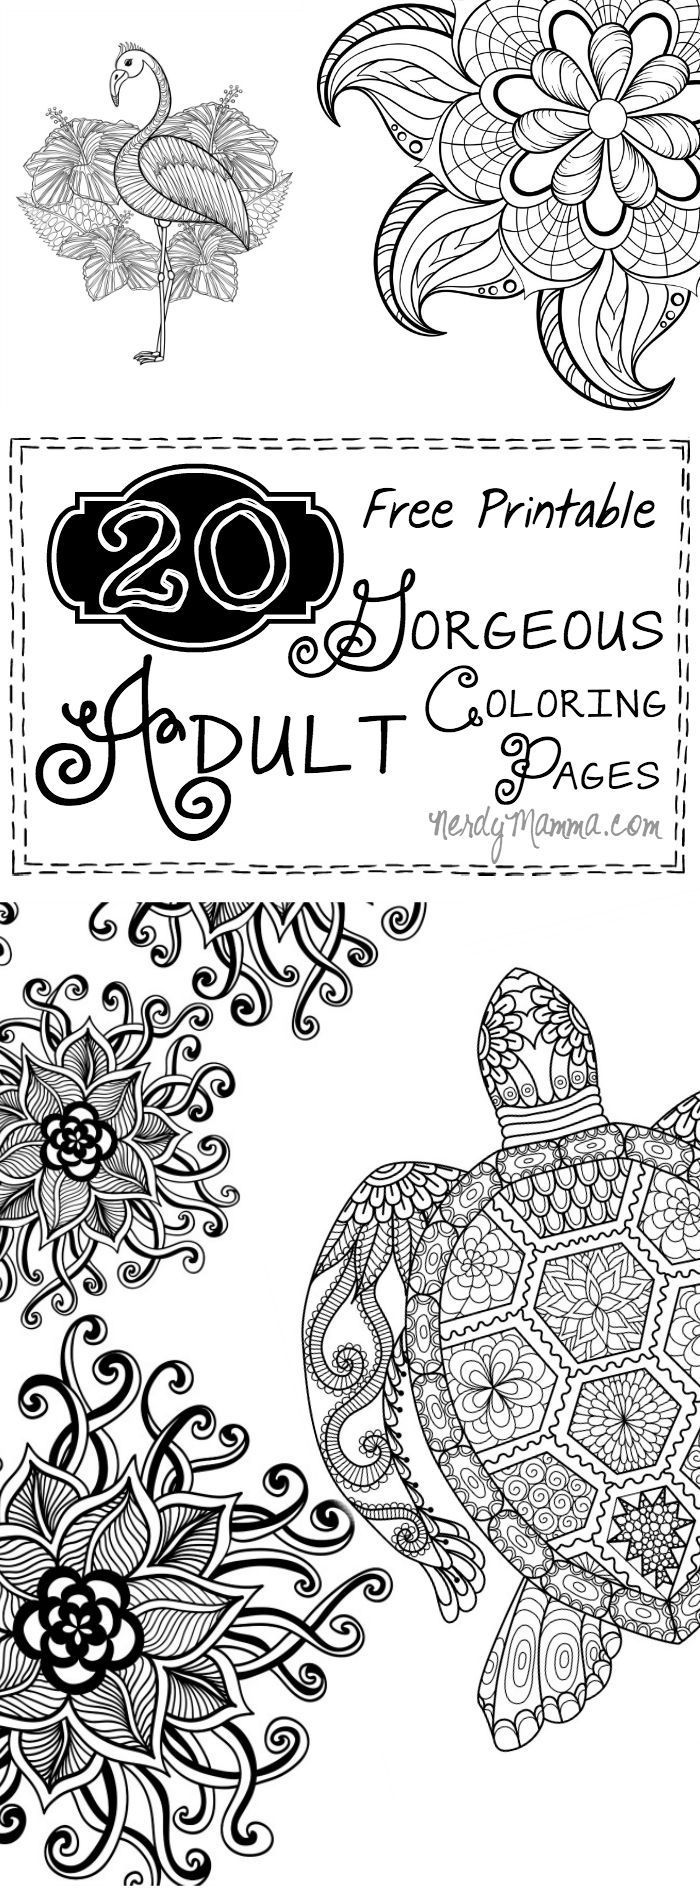 Stress less coloring by the shore - 20 Gorgeous Free Printable Adult Coloring Pages